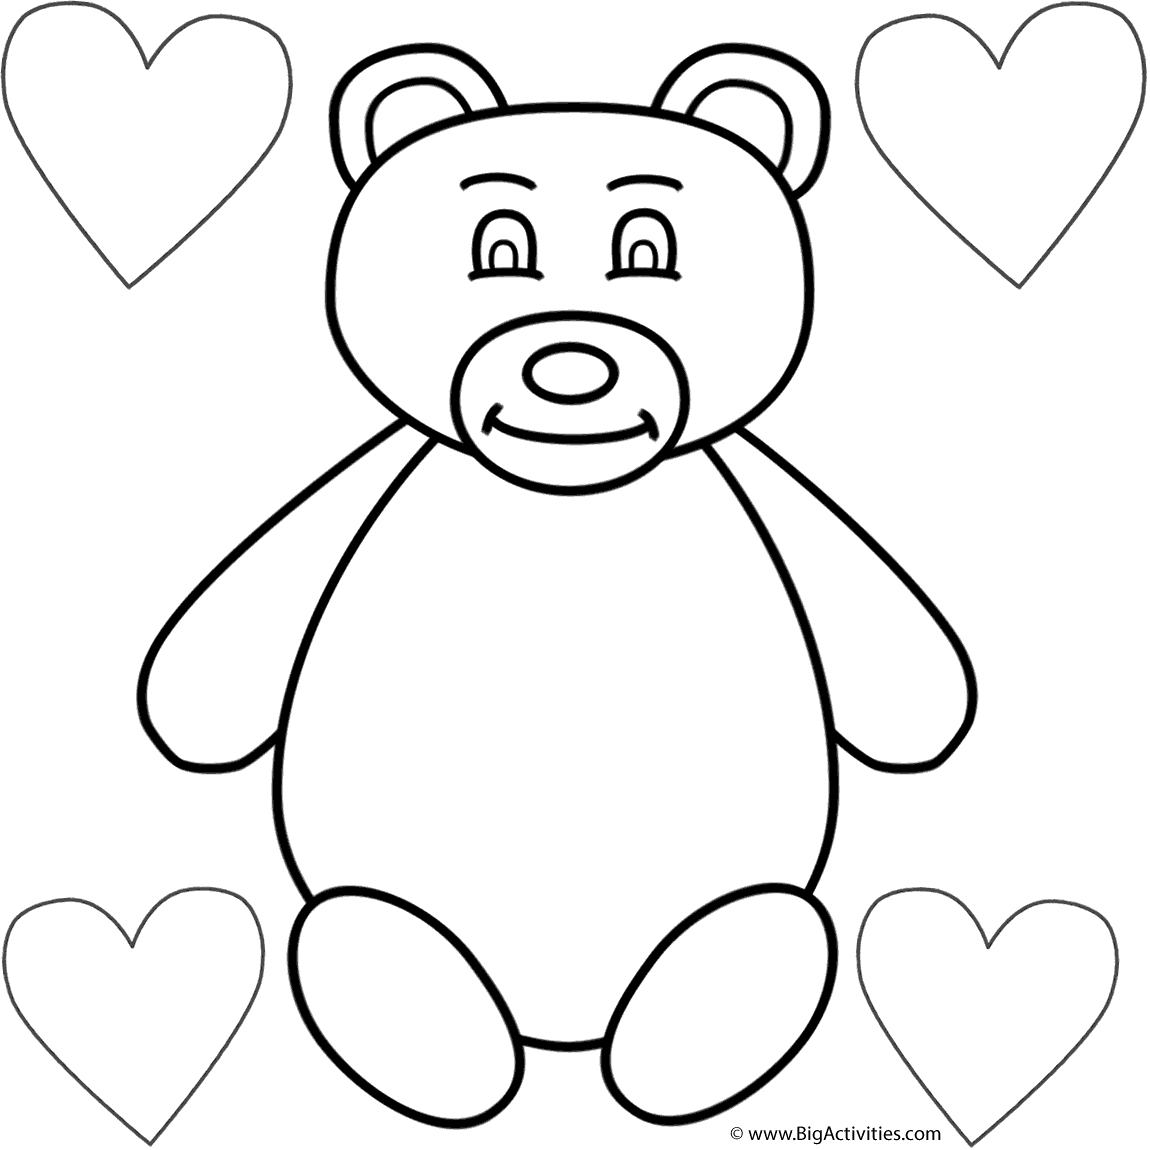 coloring pages teddy bear heart | Teddy Bear with Hearts Around - Coloring Page (Animals)